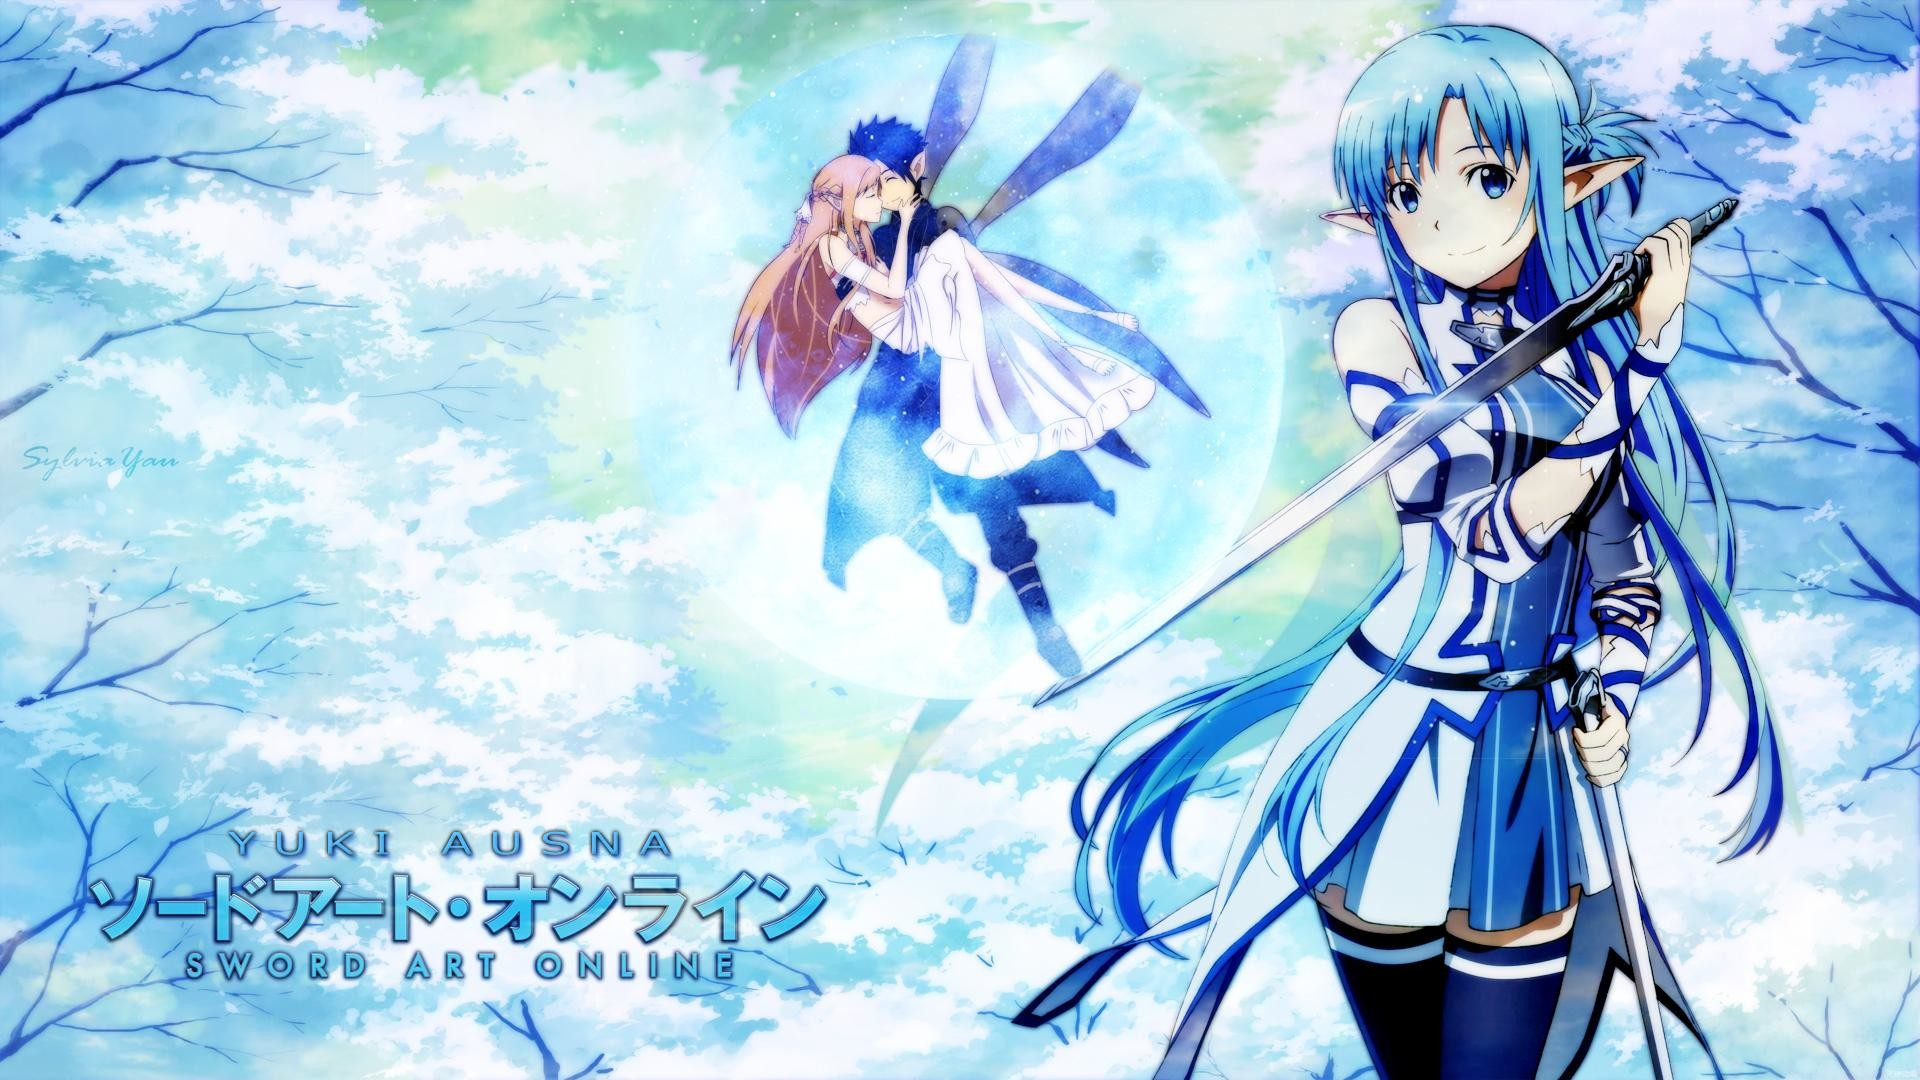 "Res: 1920x1080,  Asuna and Kirito - Sword Art Online wallpaper - Anime wallpapers  ..."">"